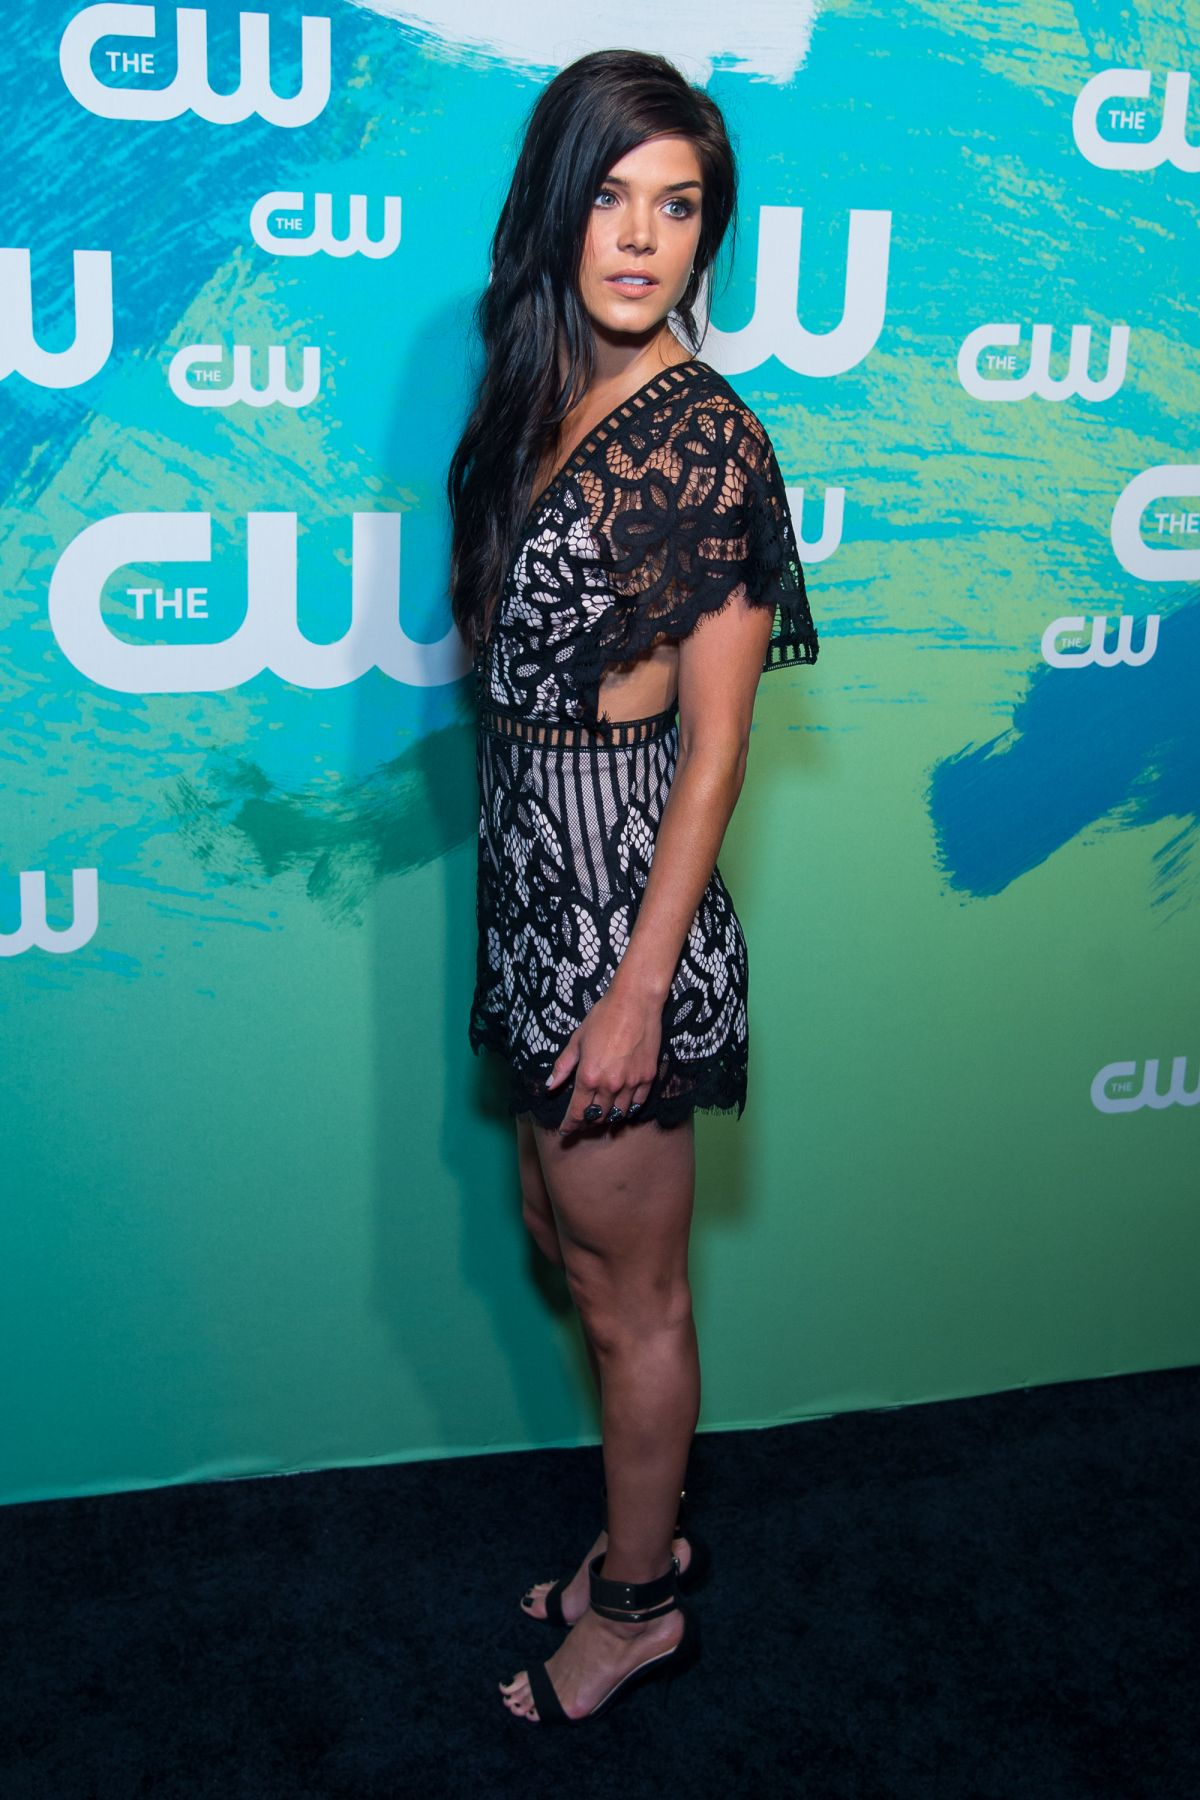 Avgeropoulos feet marie The 100's